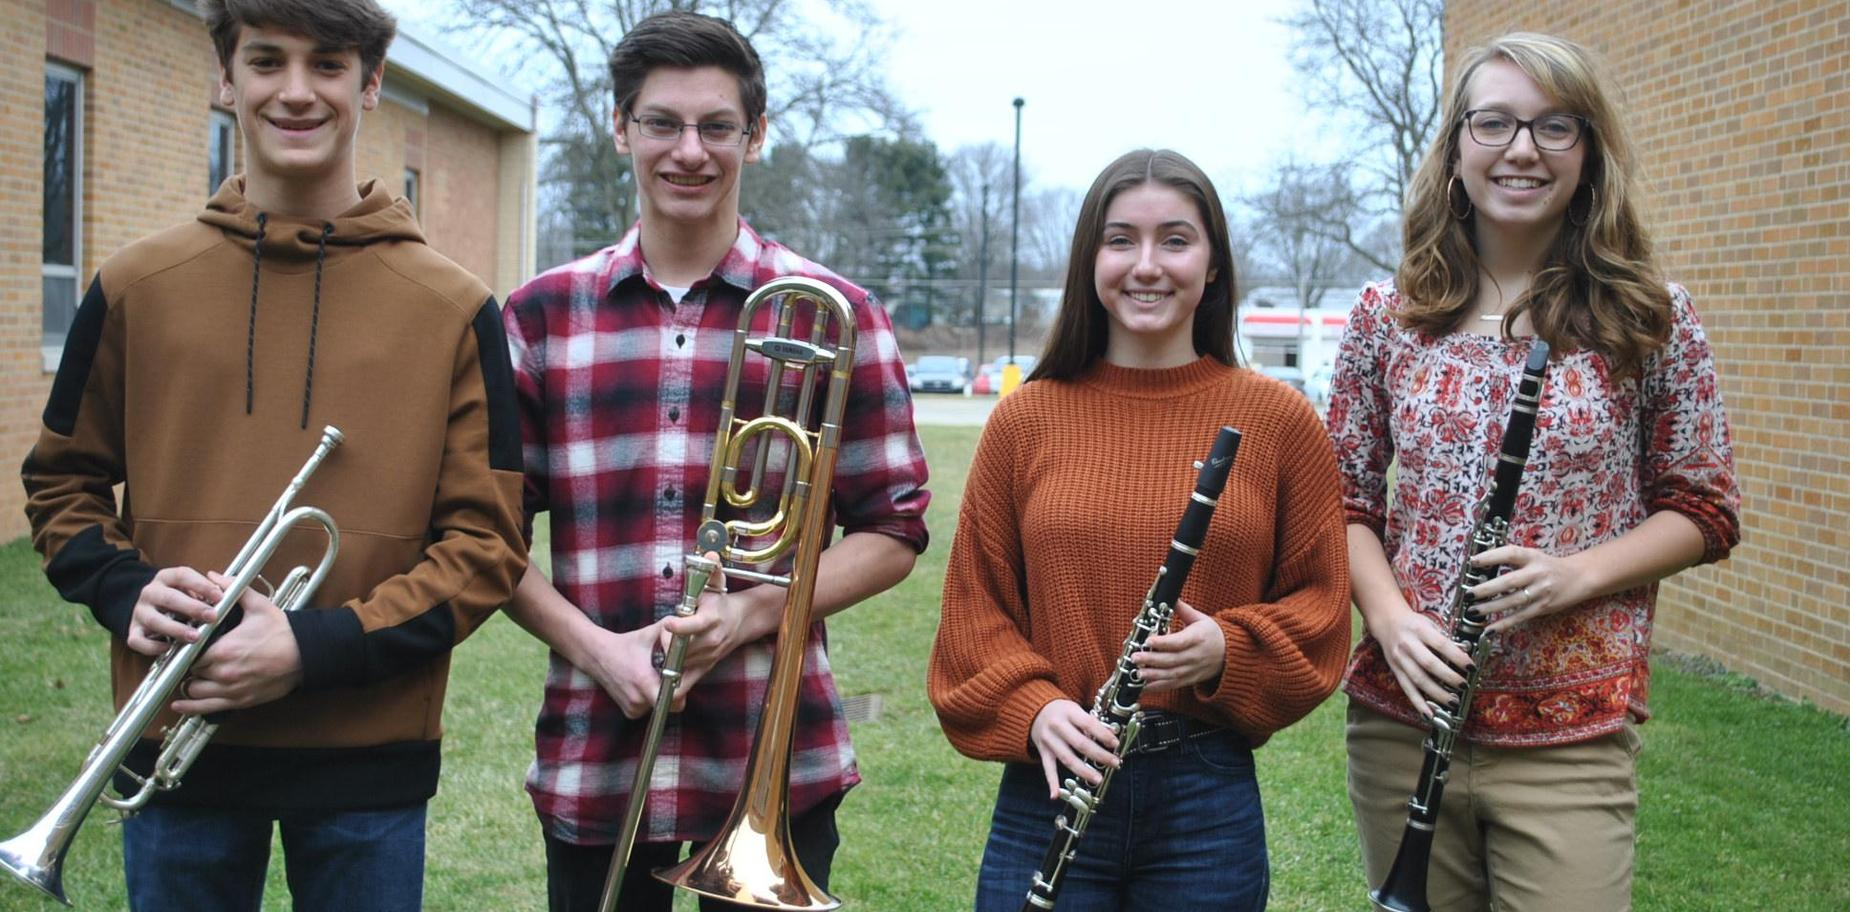 PMEA District Band representatives with instruments